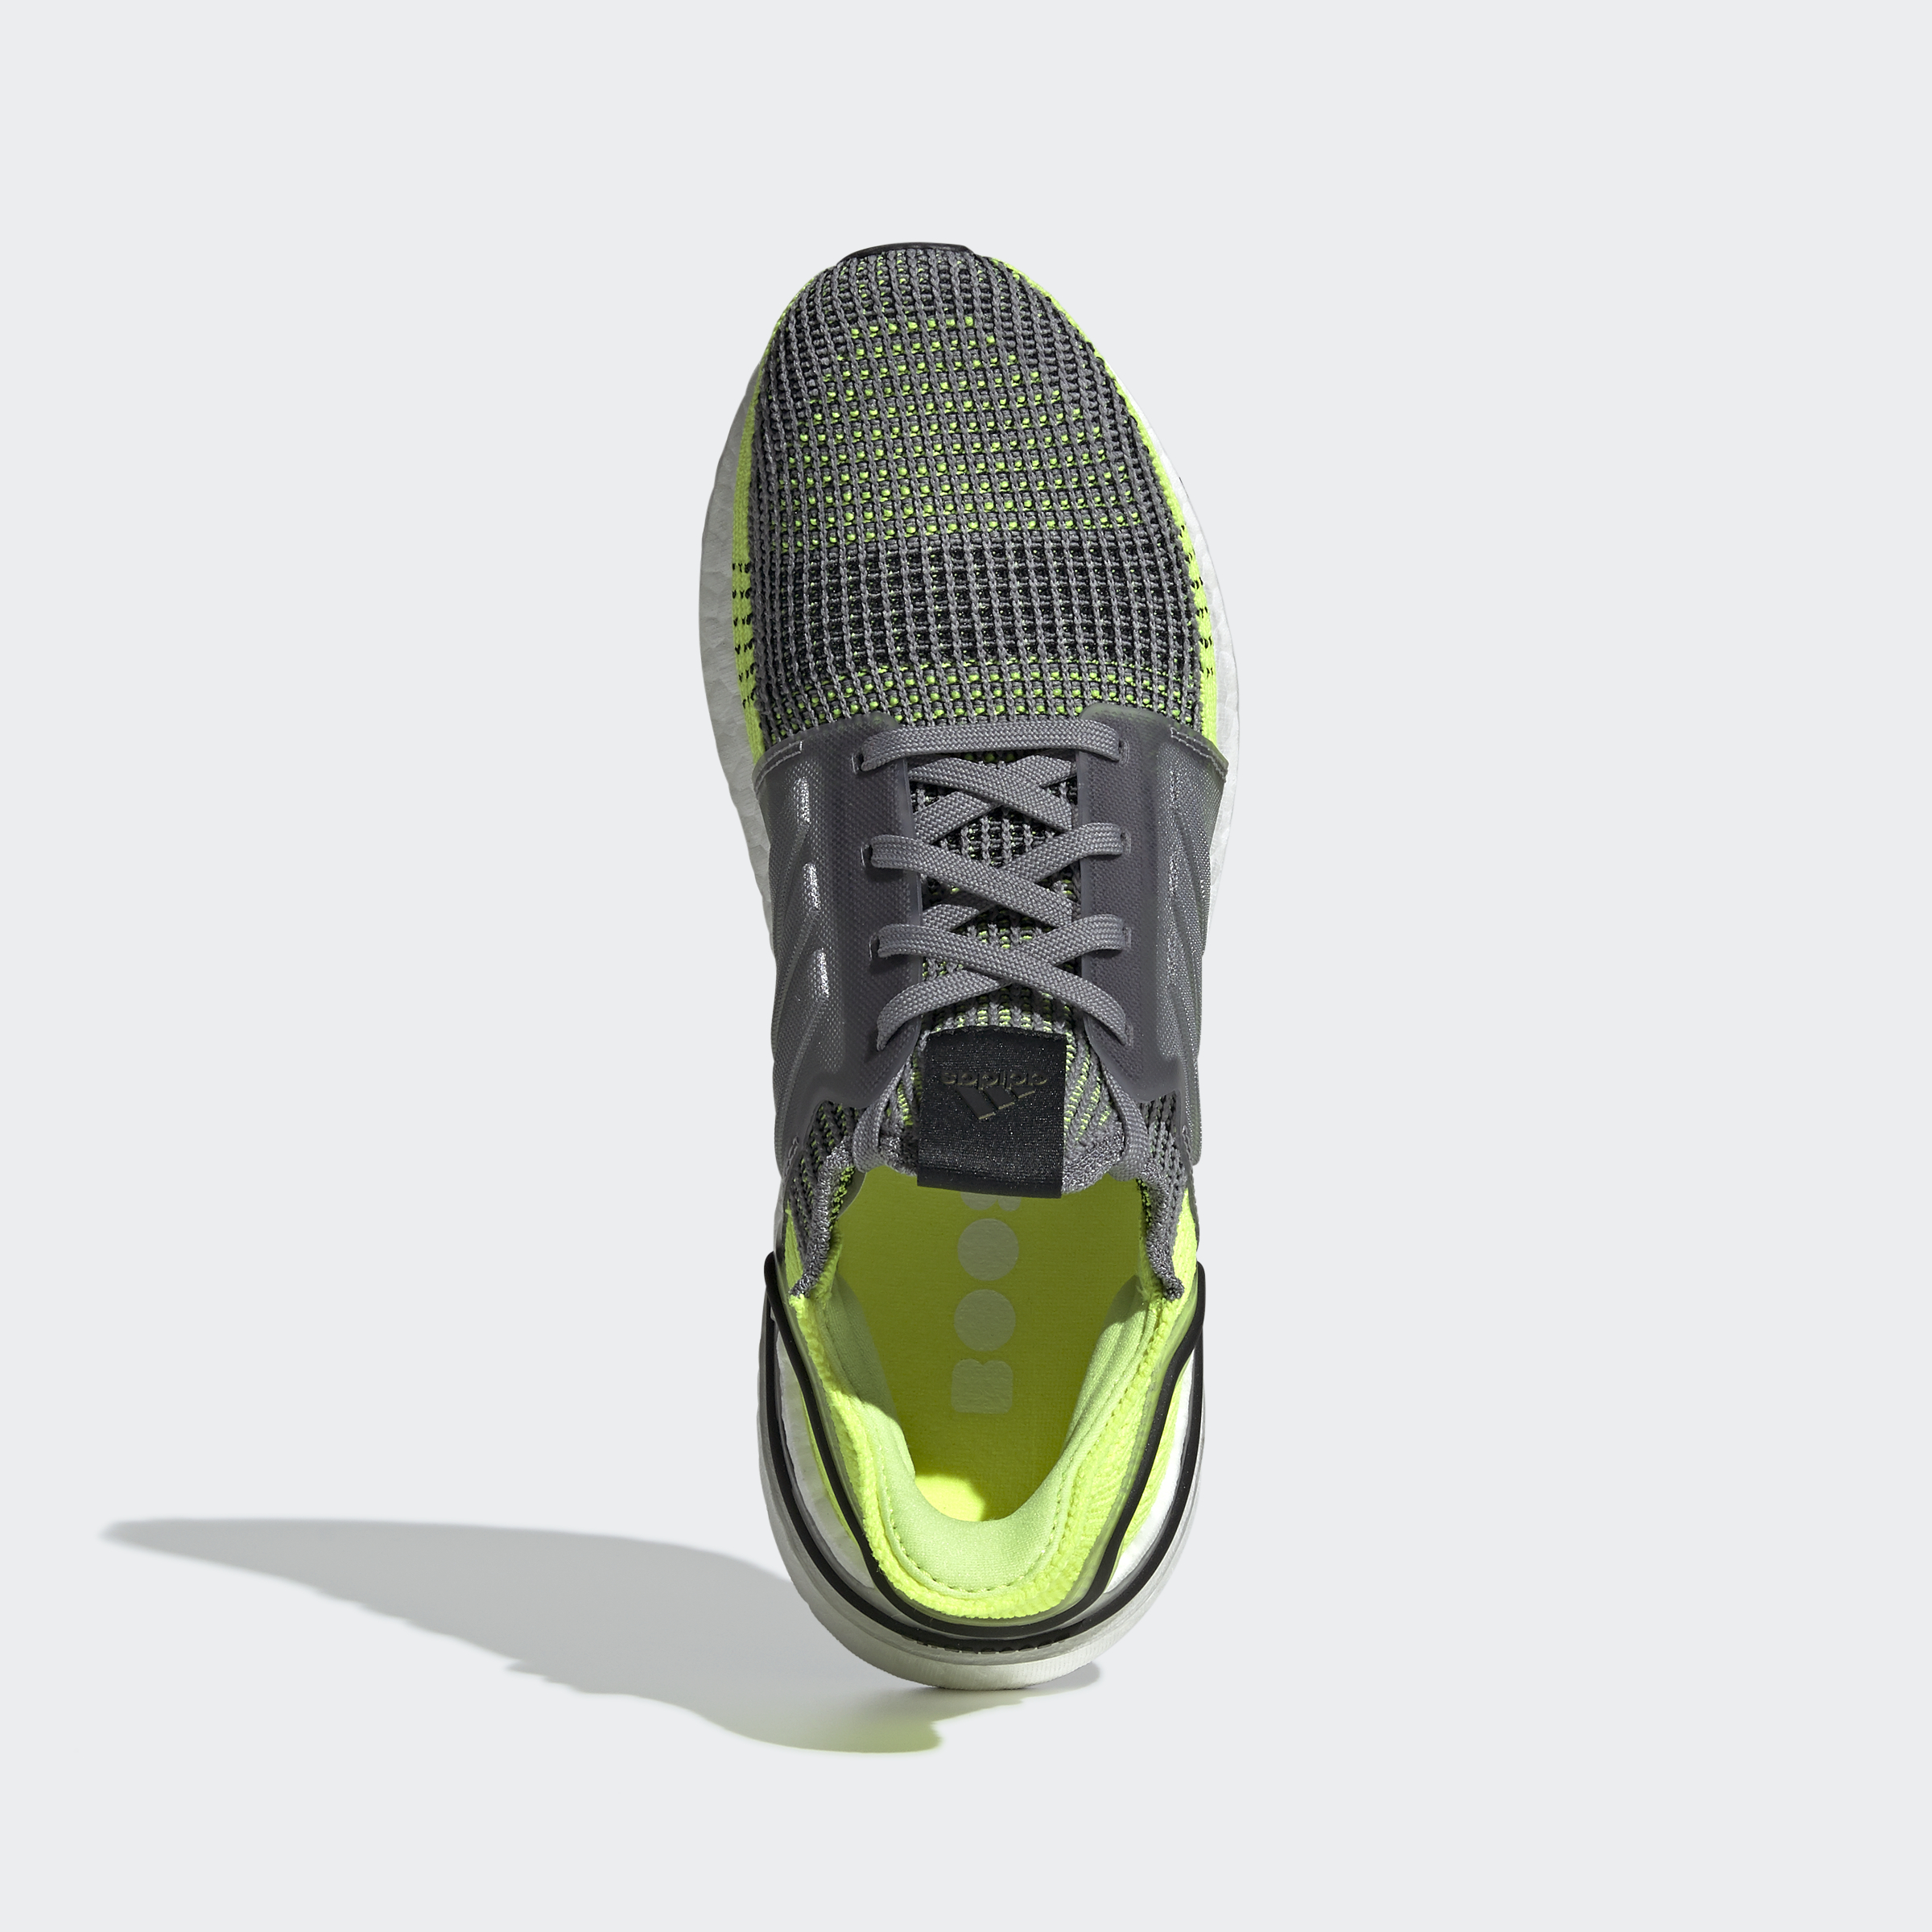 adidas-Ultraboost-19-Shoes-Athletic-amp-Sneakers thumbnail 35